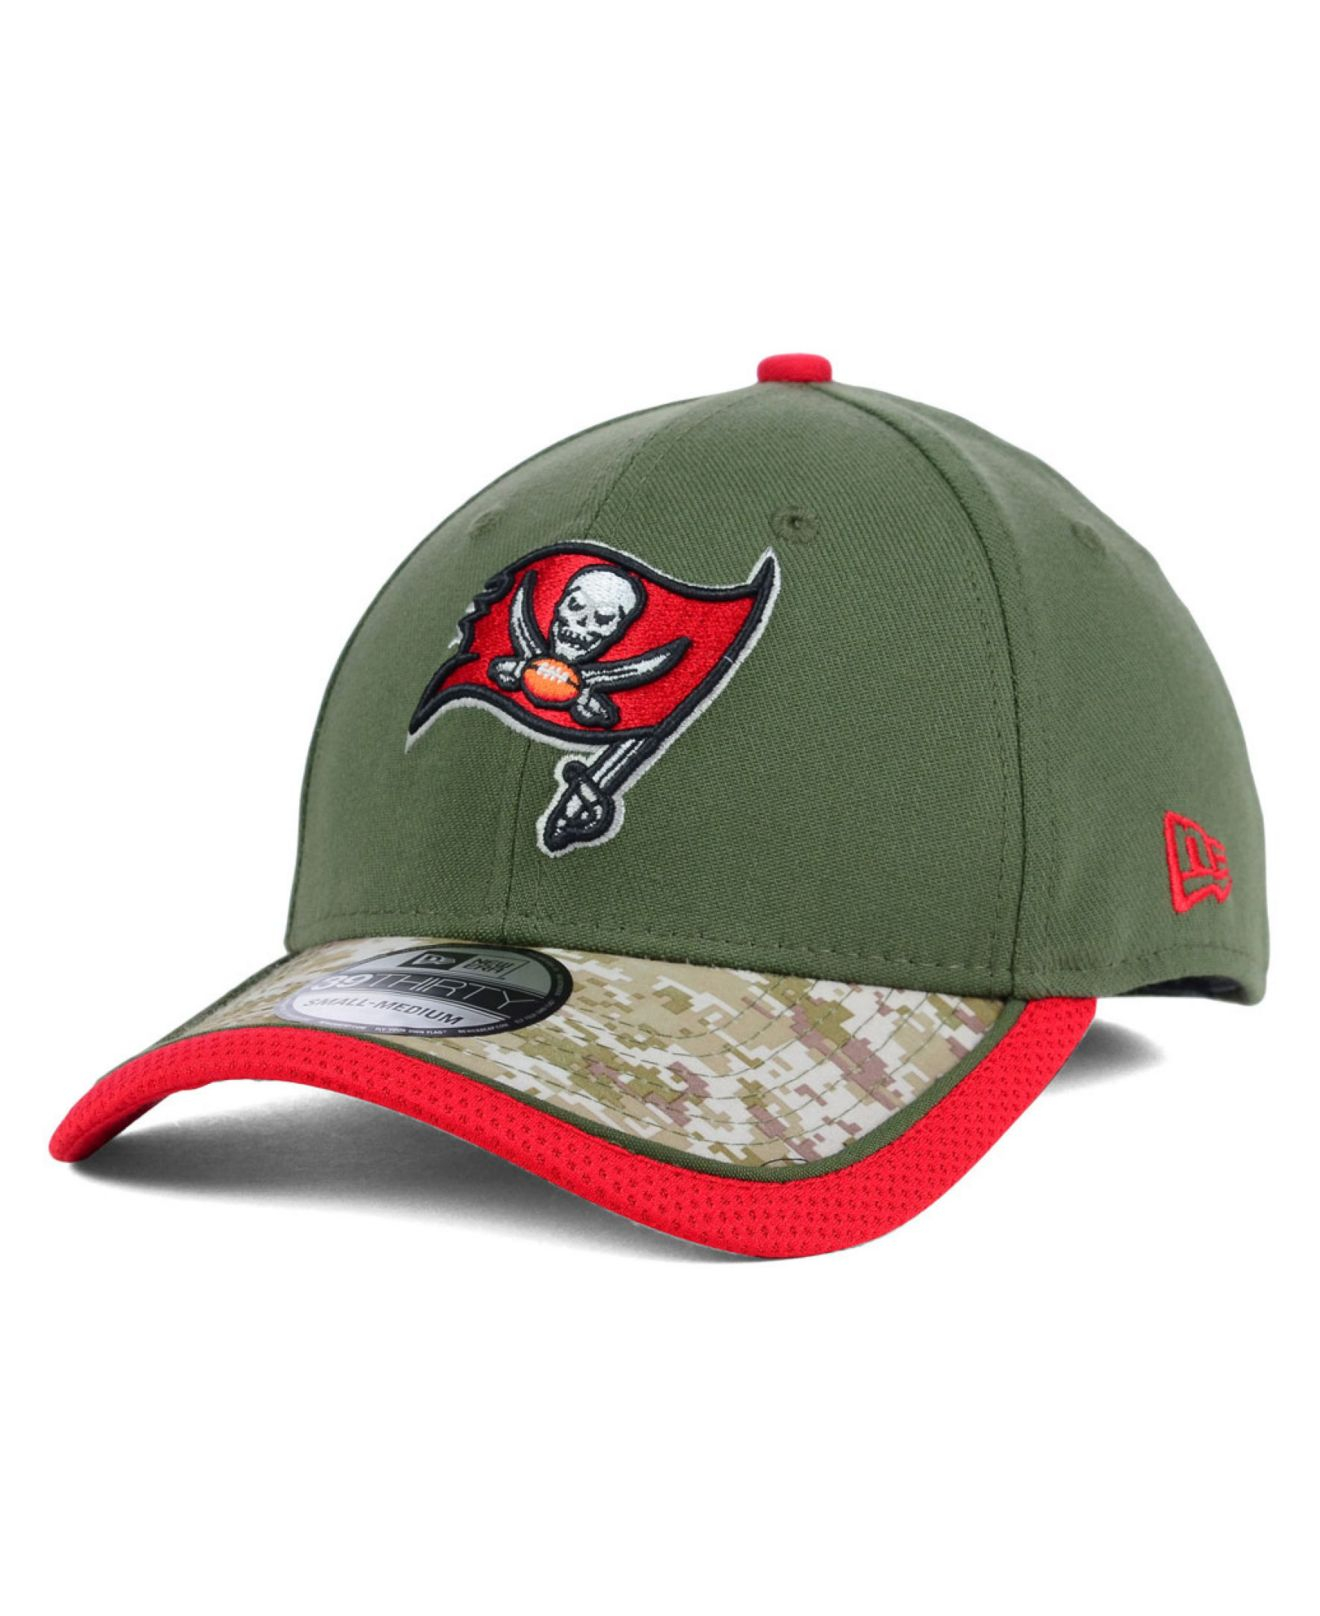 Lyst - Ktz Tampa Bay Buccaneers Salute To Service 39thirty Cap in ... e35729258